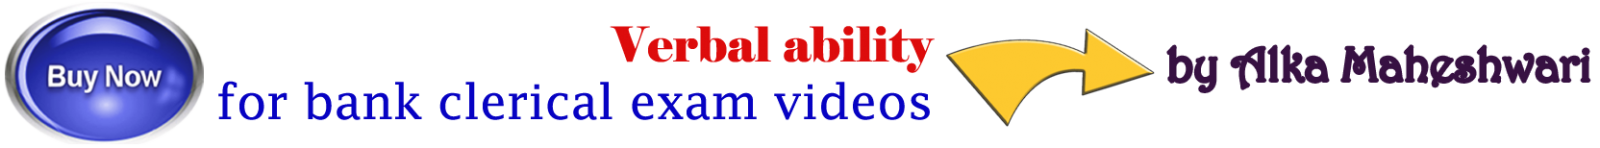 Verbal ability for bank clerical exam videos by Alka Maheshwari